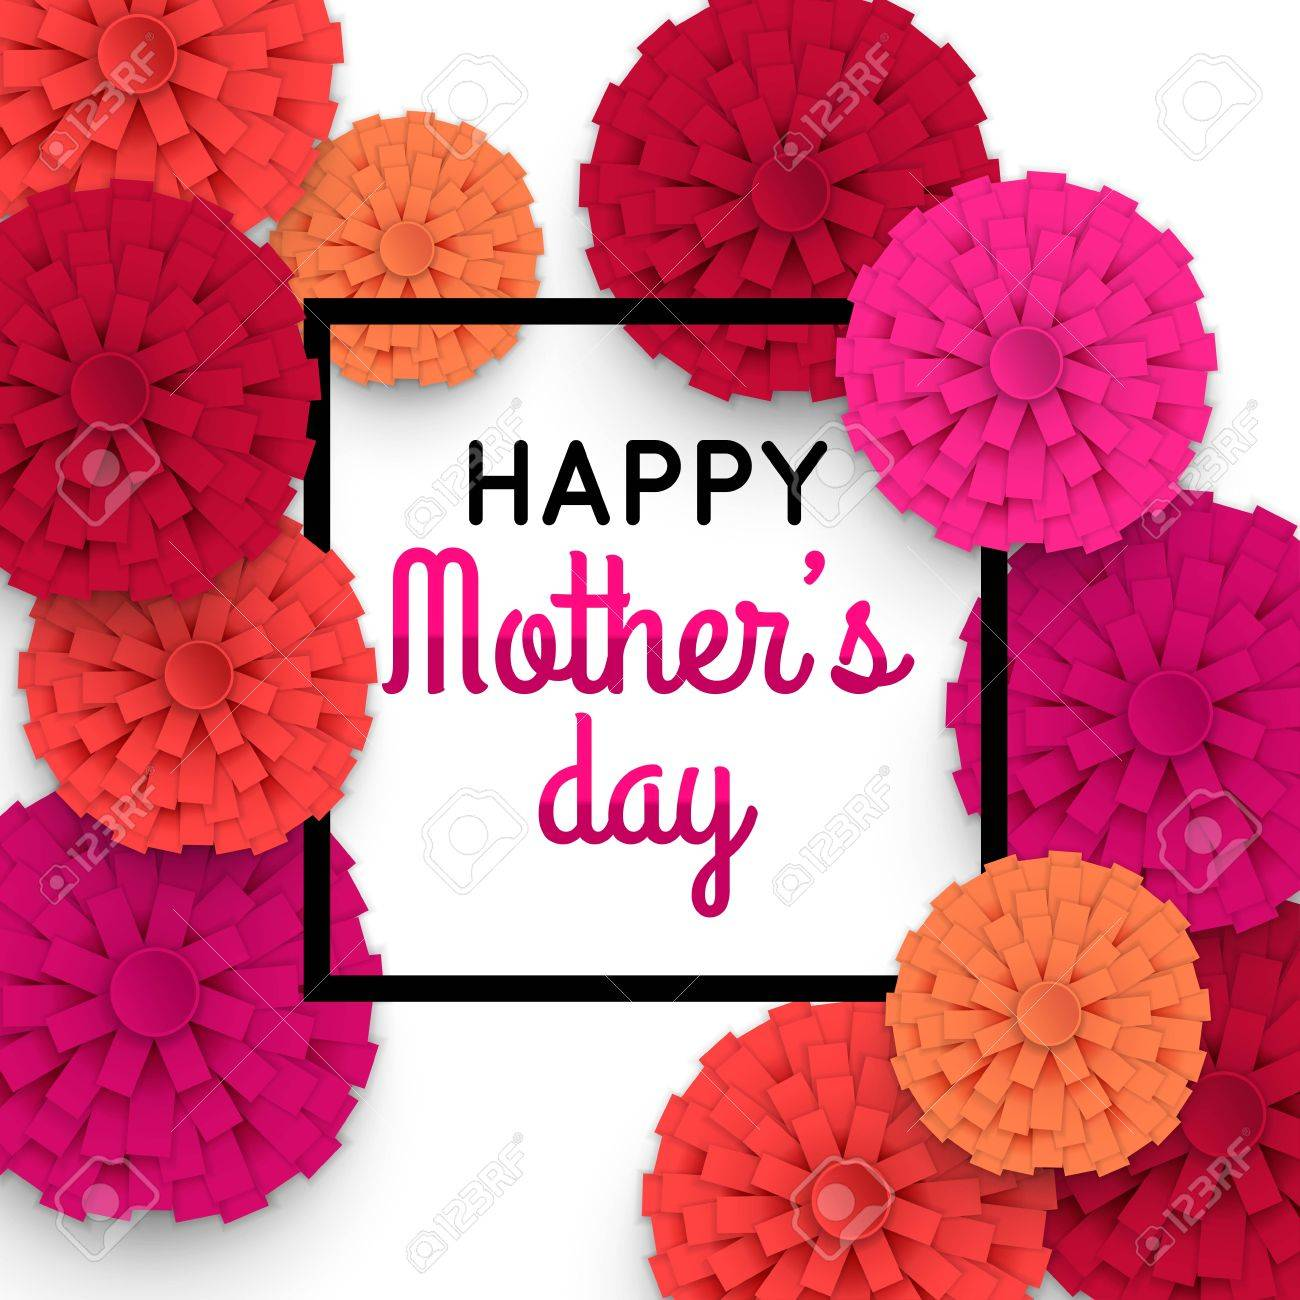 Happy Mothers Day floral greeting card. Mothers Day bacground with paper flowers. Vector illustrator. - 55947472